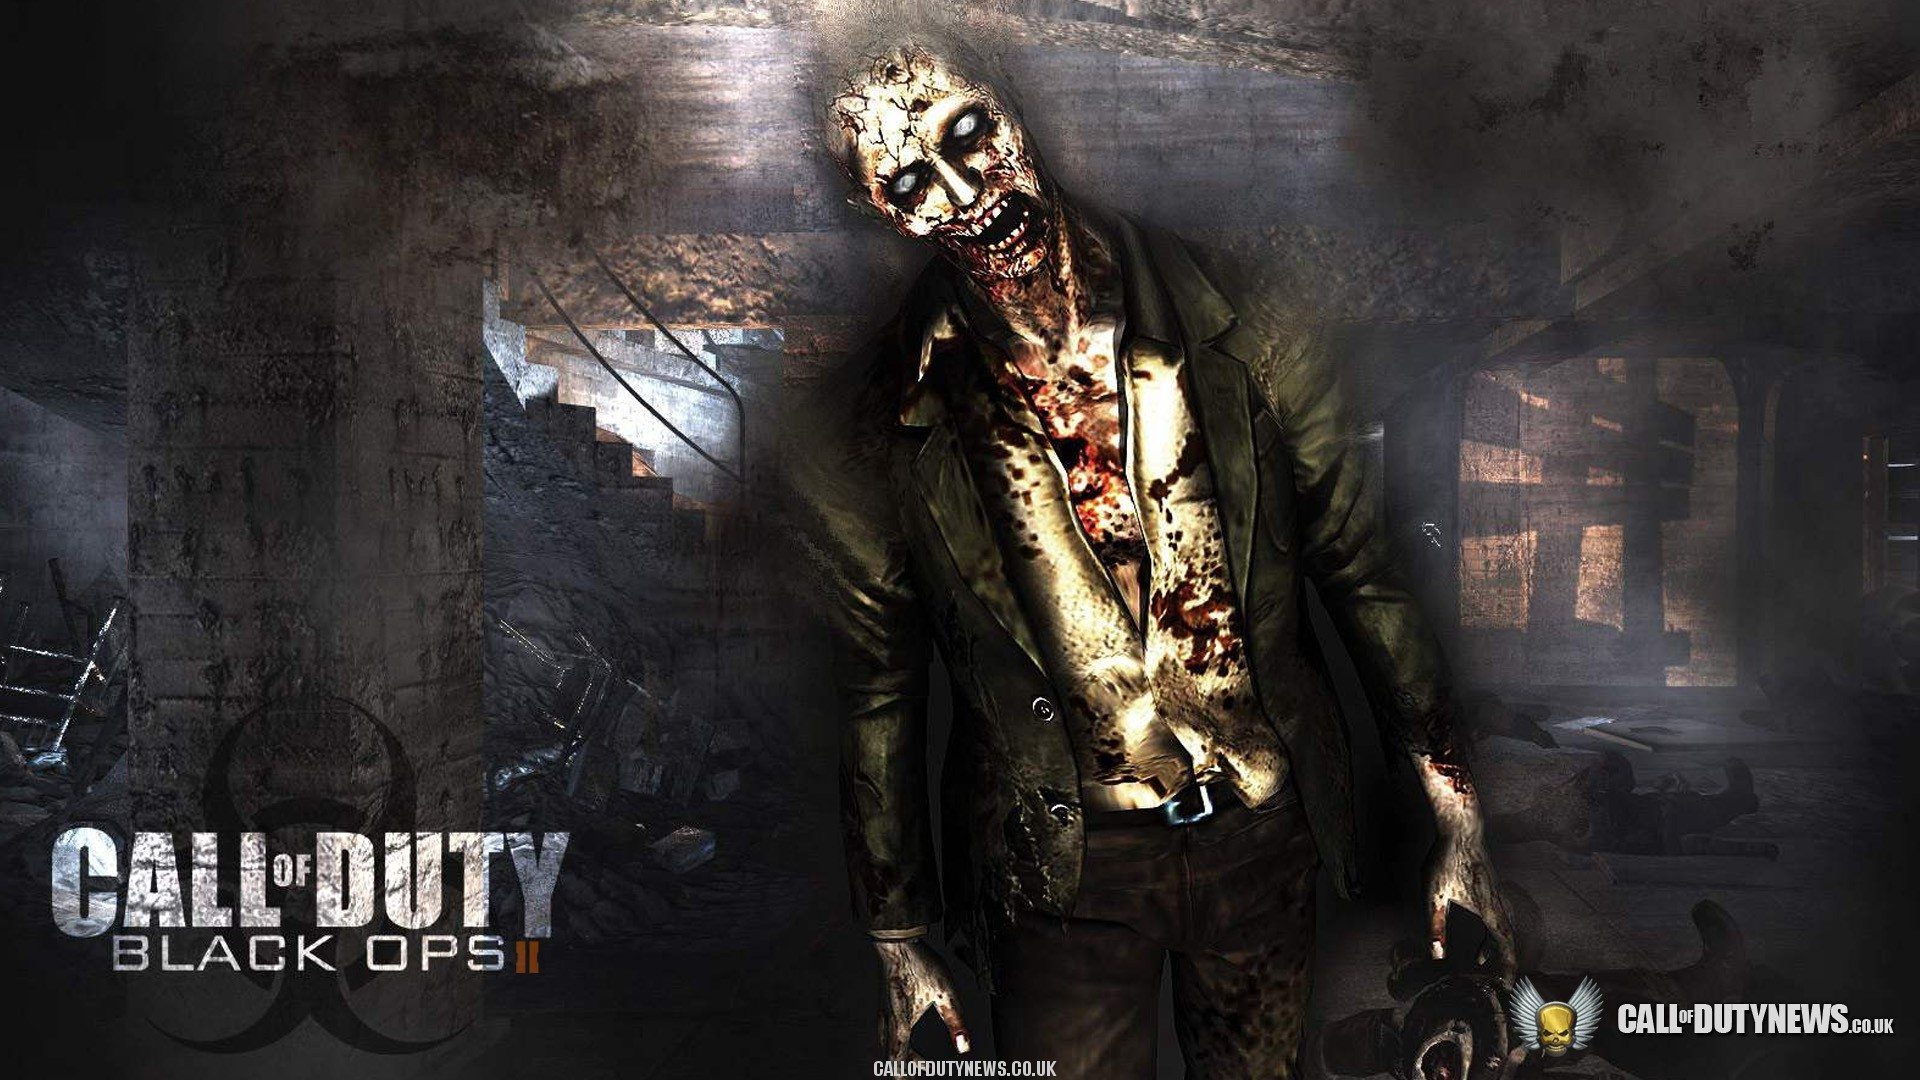 zombies in black ops 2 05 may 2012 category black ops 2 written by 1920x1080